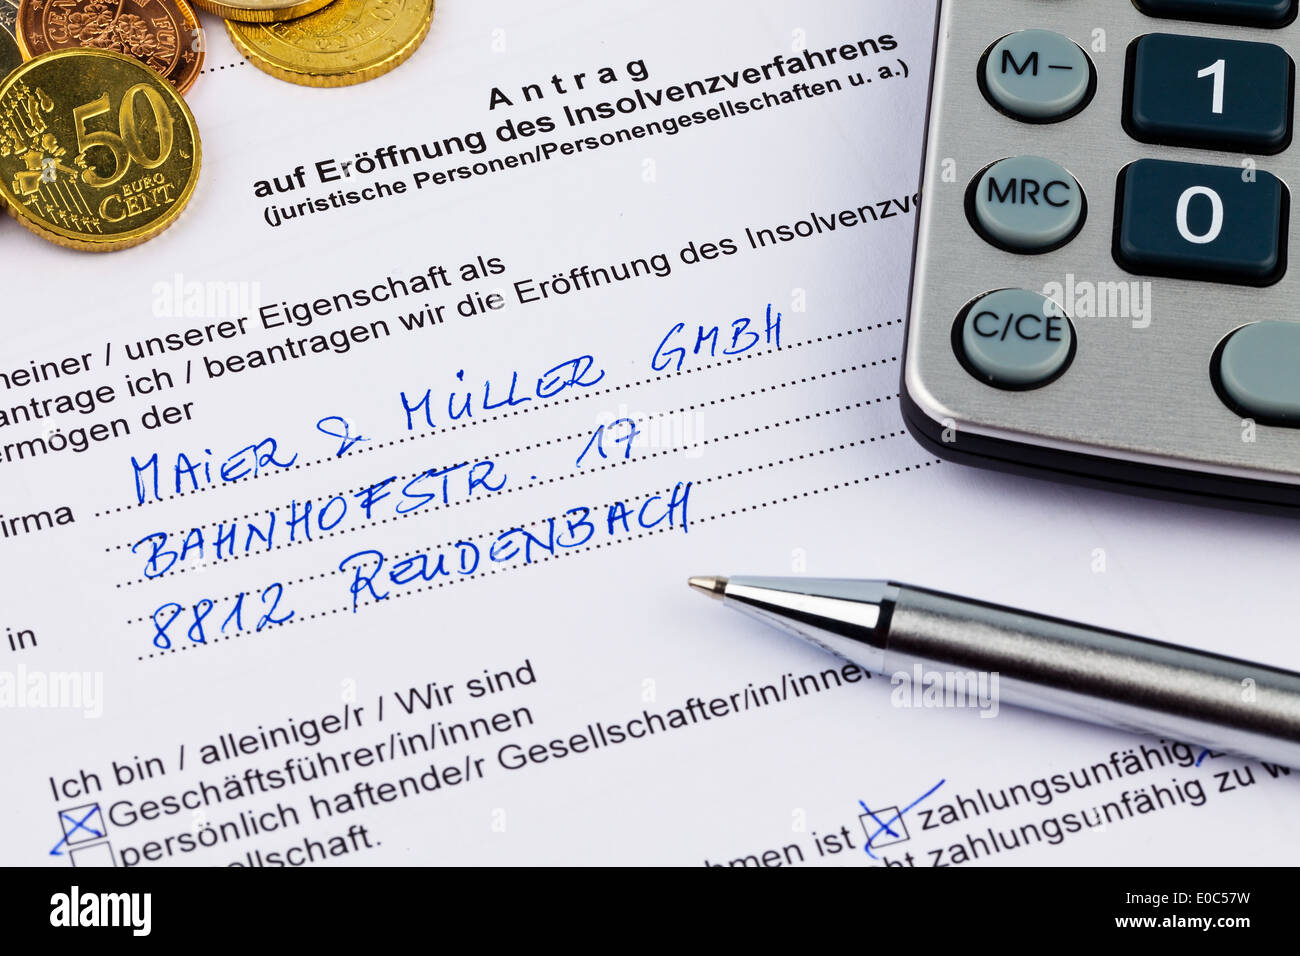 The application for a bankruptcy for enterprise in Germany, Der Antrag fuer einen Konkurs fuer Unternehmen in Deutschland Stock Photo